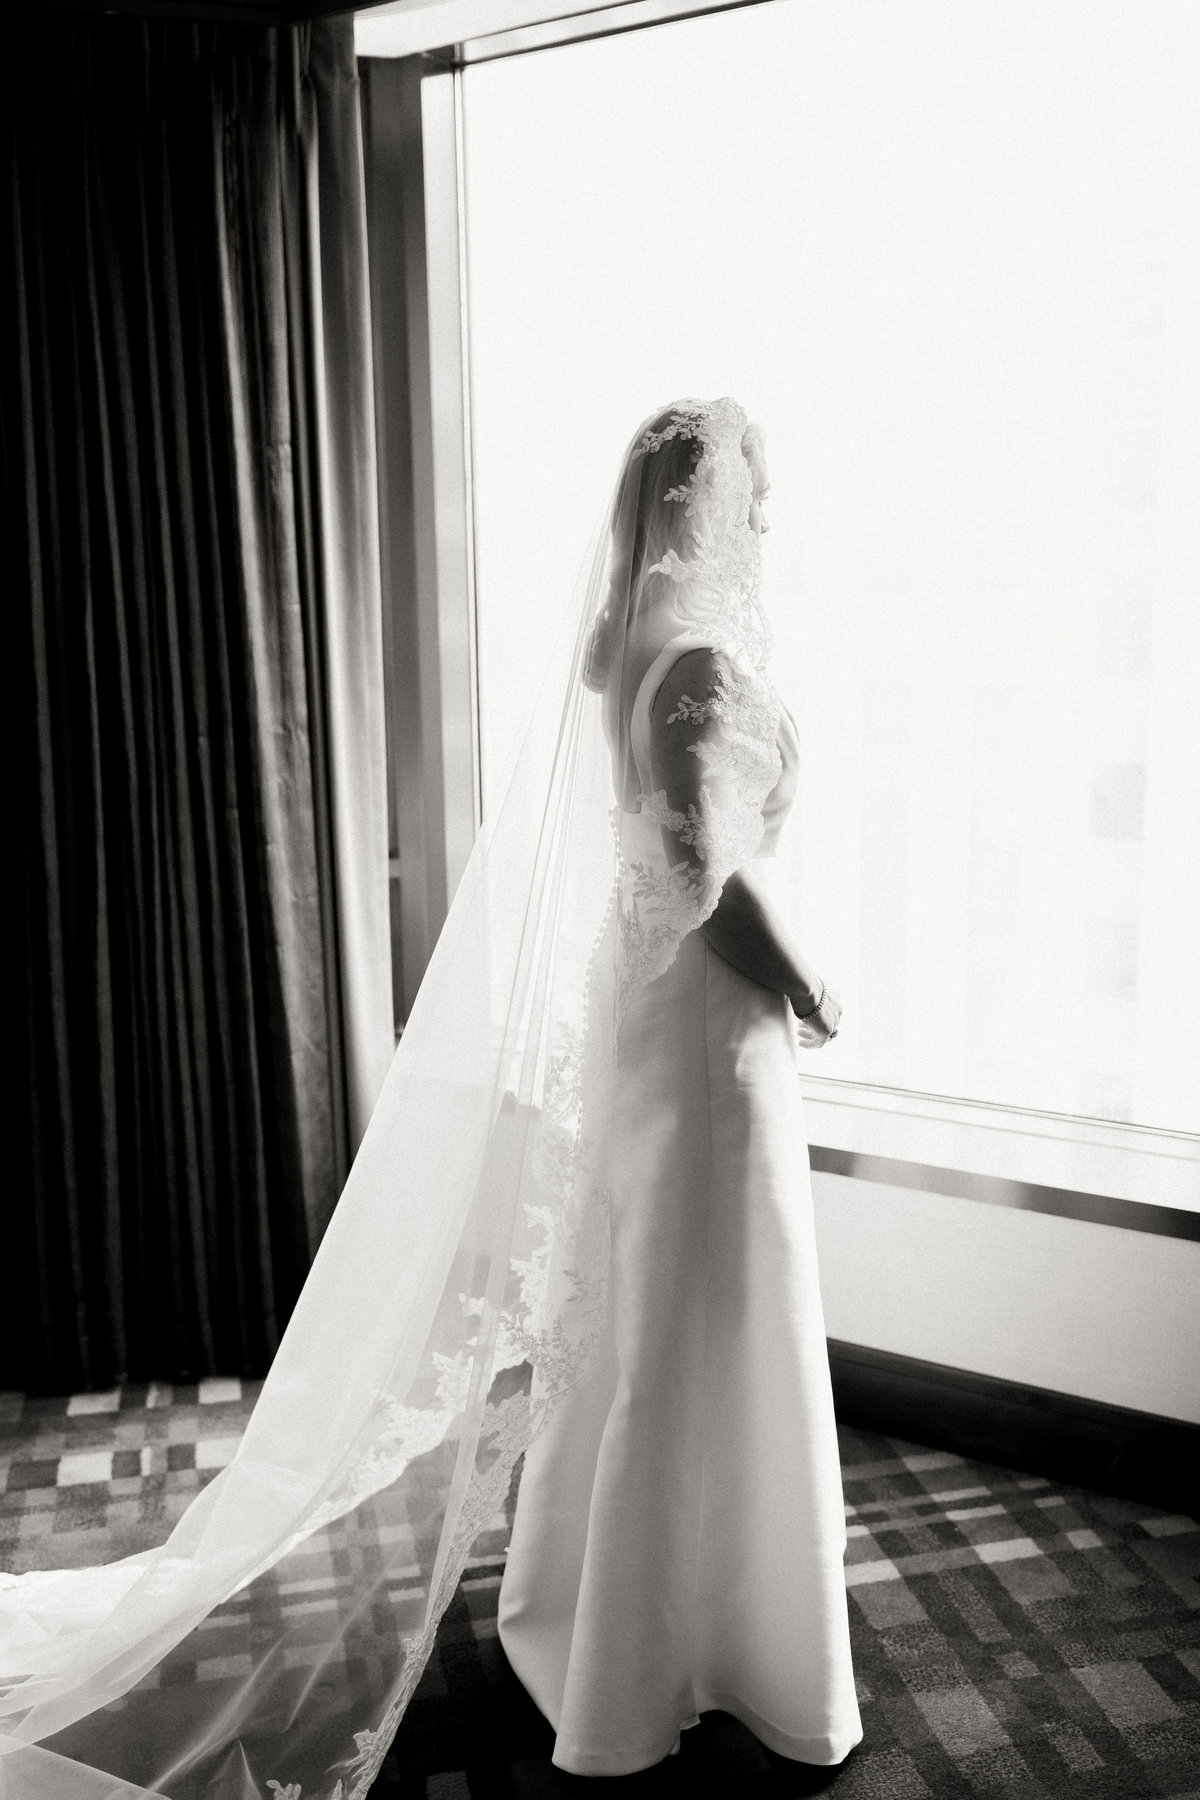 TiffaneyChildsPhotography-ChicagoWeddingPhotographer-Kimberly+Jimmy-ChicagoRenaissanceHotelWedding-BrideReady-1